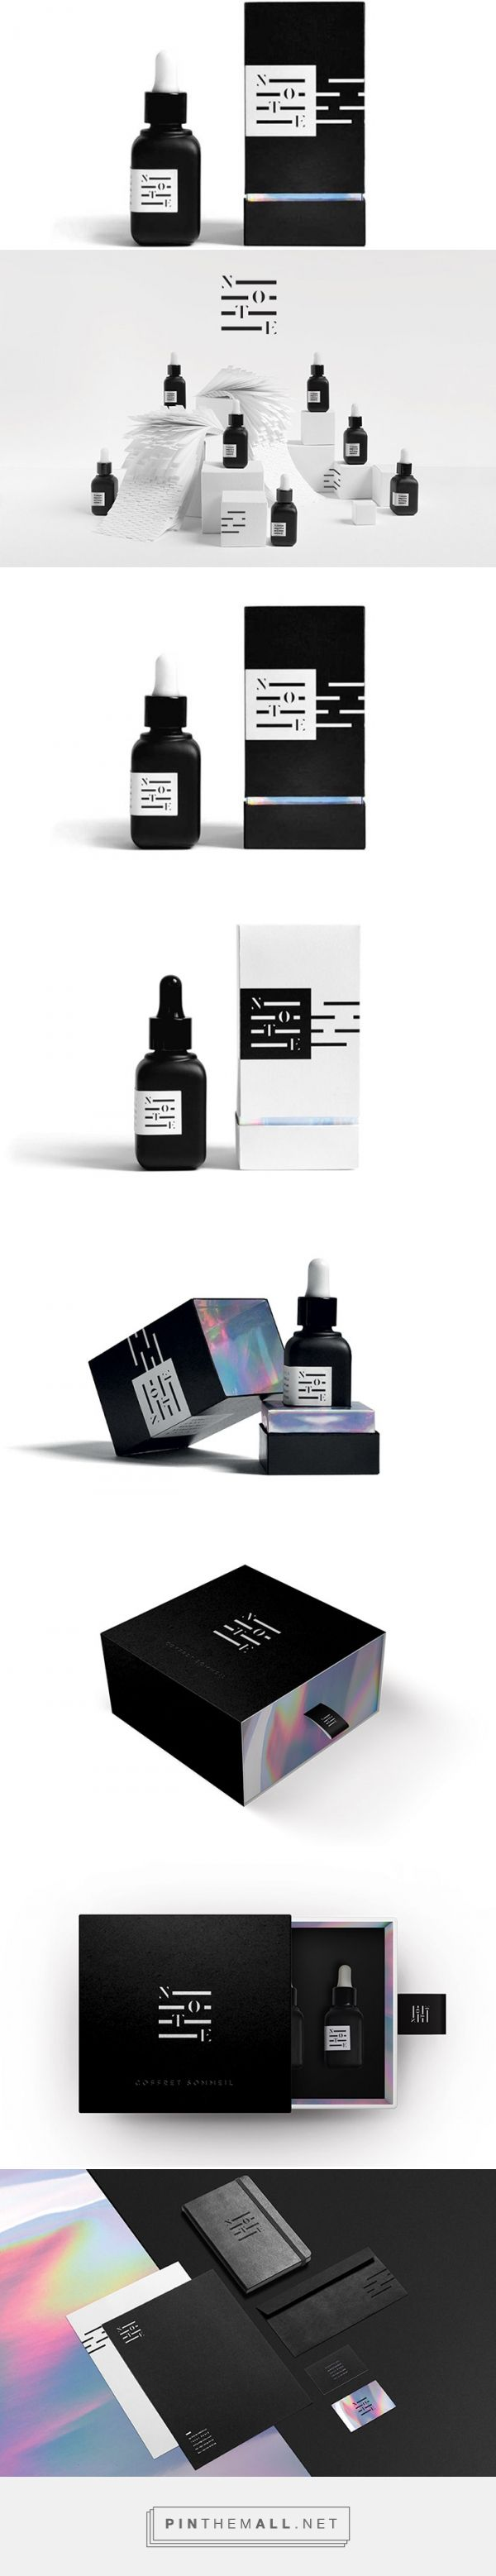 N O T E - Daily Package Design InspirationDaily Package Design Inspiration | - created via https://pinthemall.net